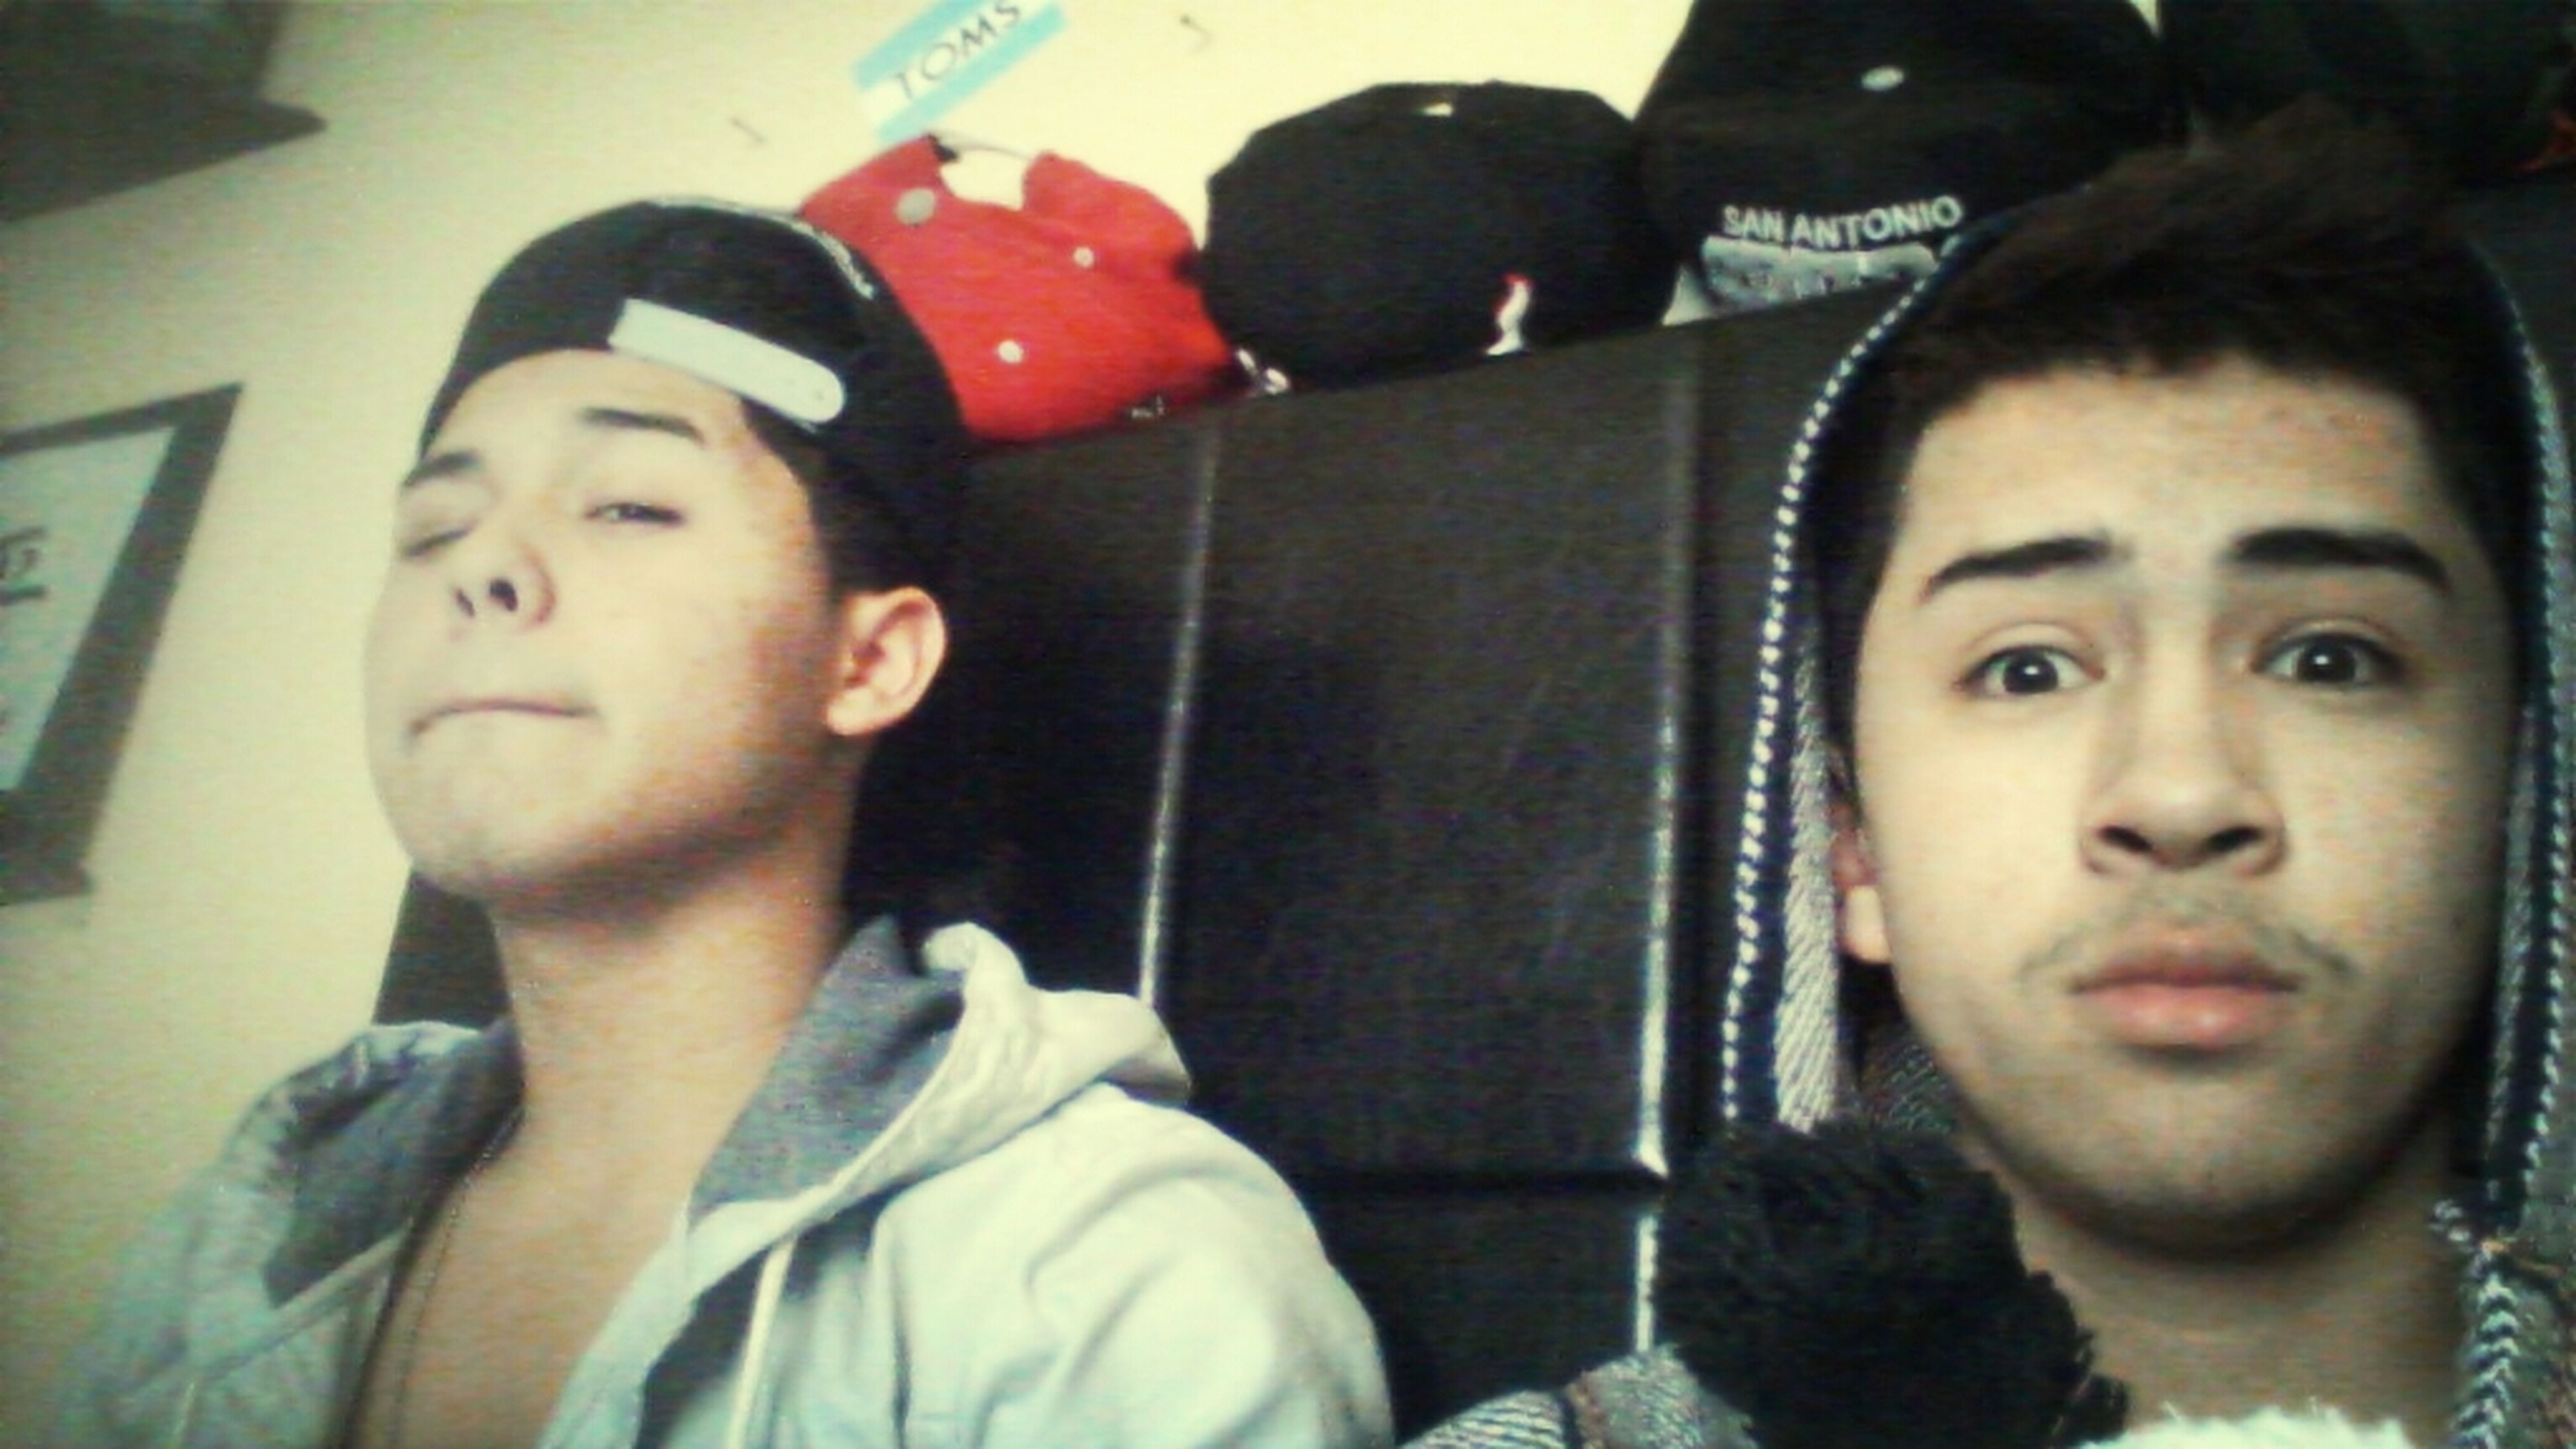 Right Out Of Bed Looking Dead With My Brother :)